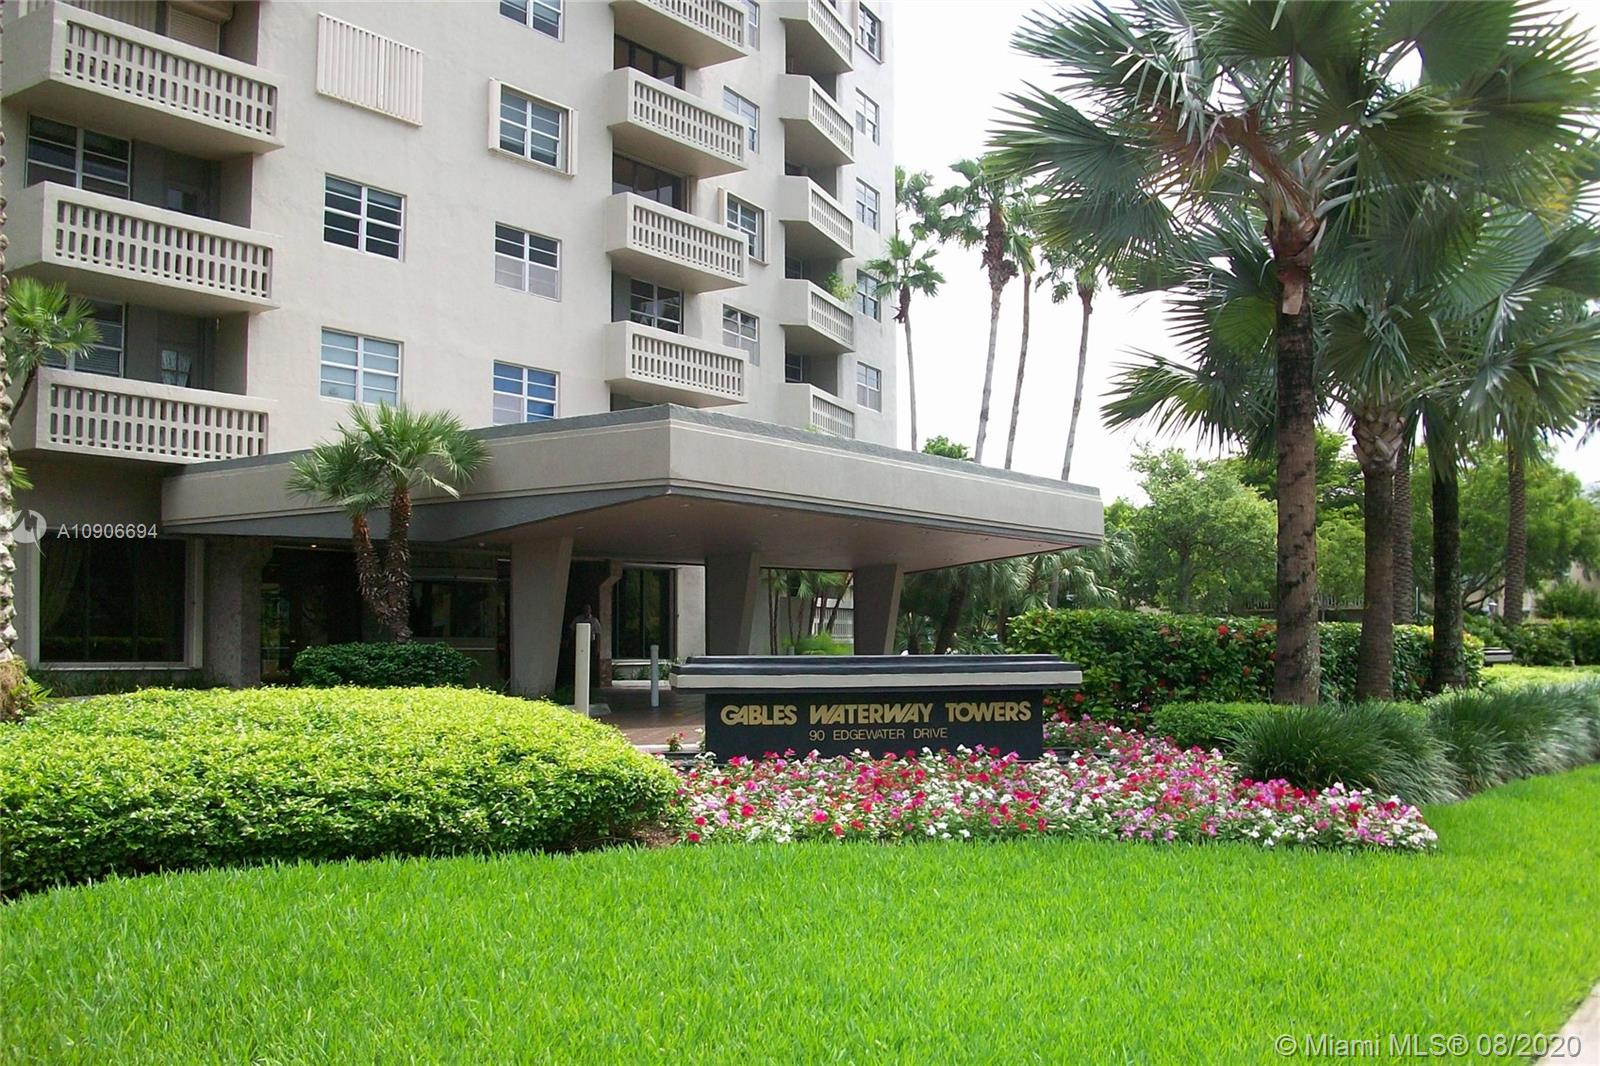 Gables Waterway #715 - 90 Edgewater Dr #715, Coral Gables, FL 33133